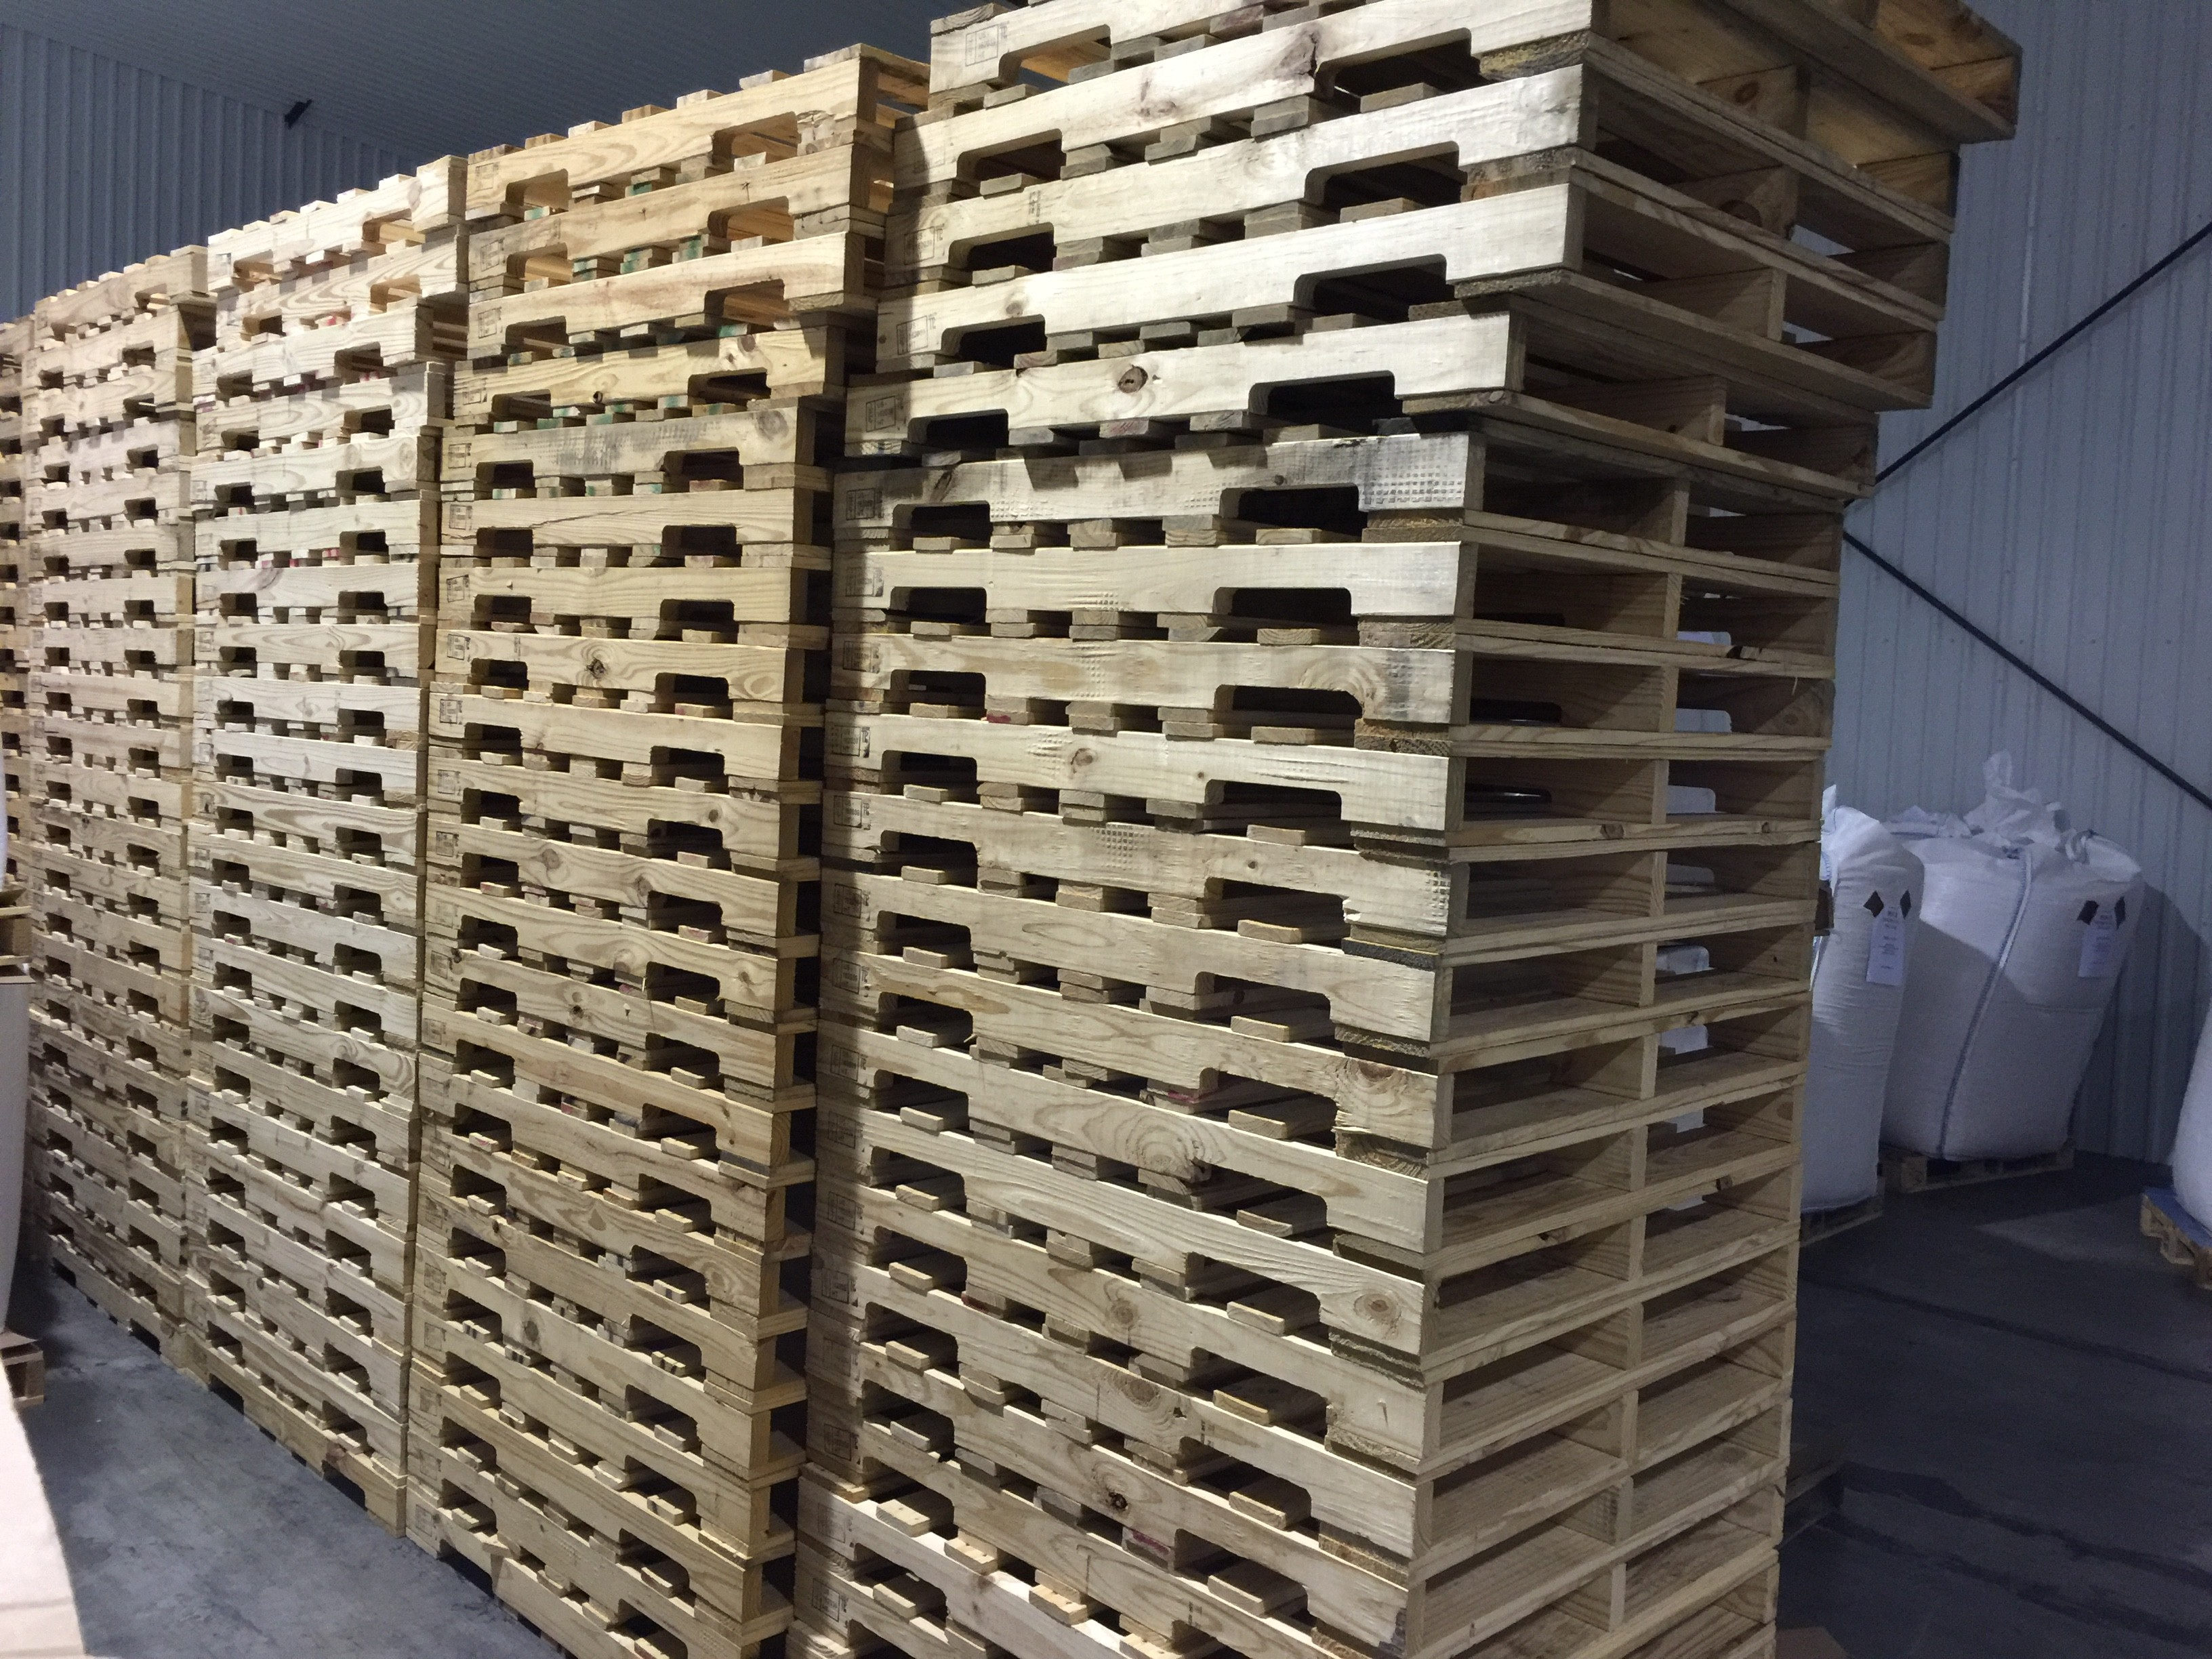 Wooden Pallets | Used Pallets | Pallets for Sale